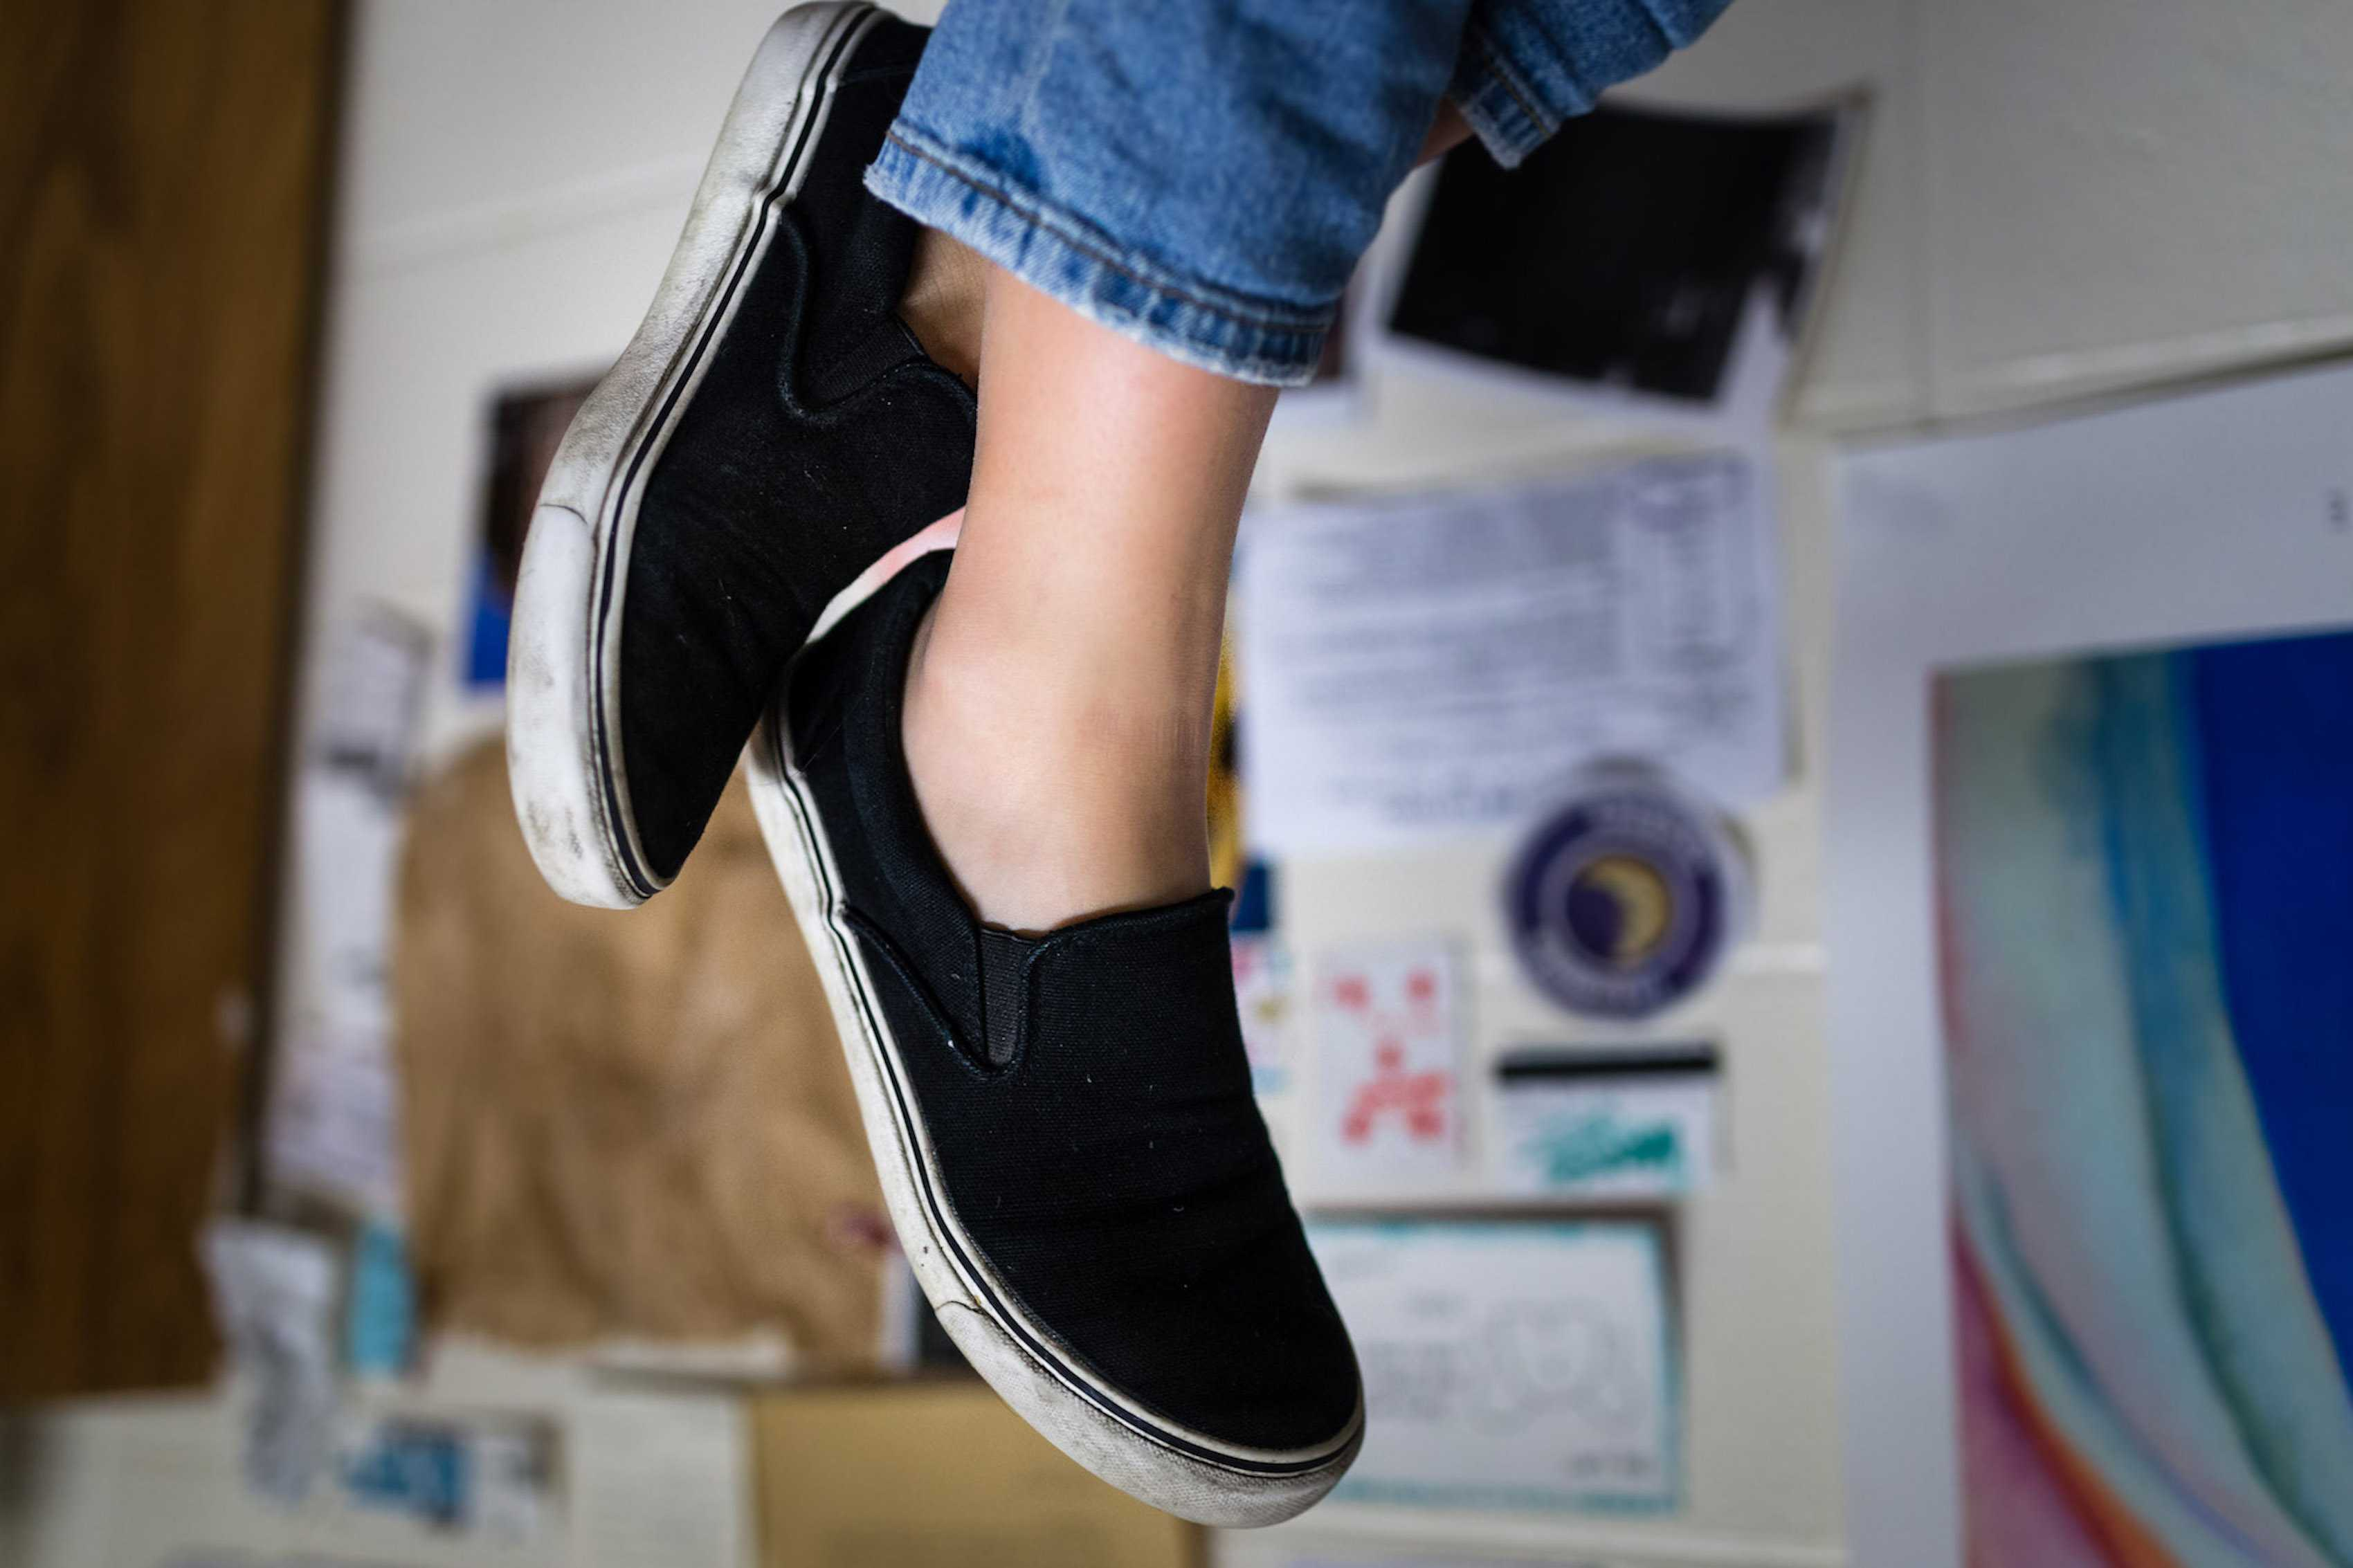 Black slip-ons are a good transition piece from the winter to spring. They can be styled in a variety of ways and can be worn comfortably everyday.